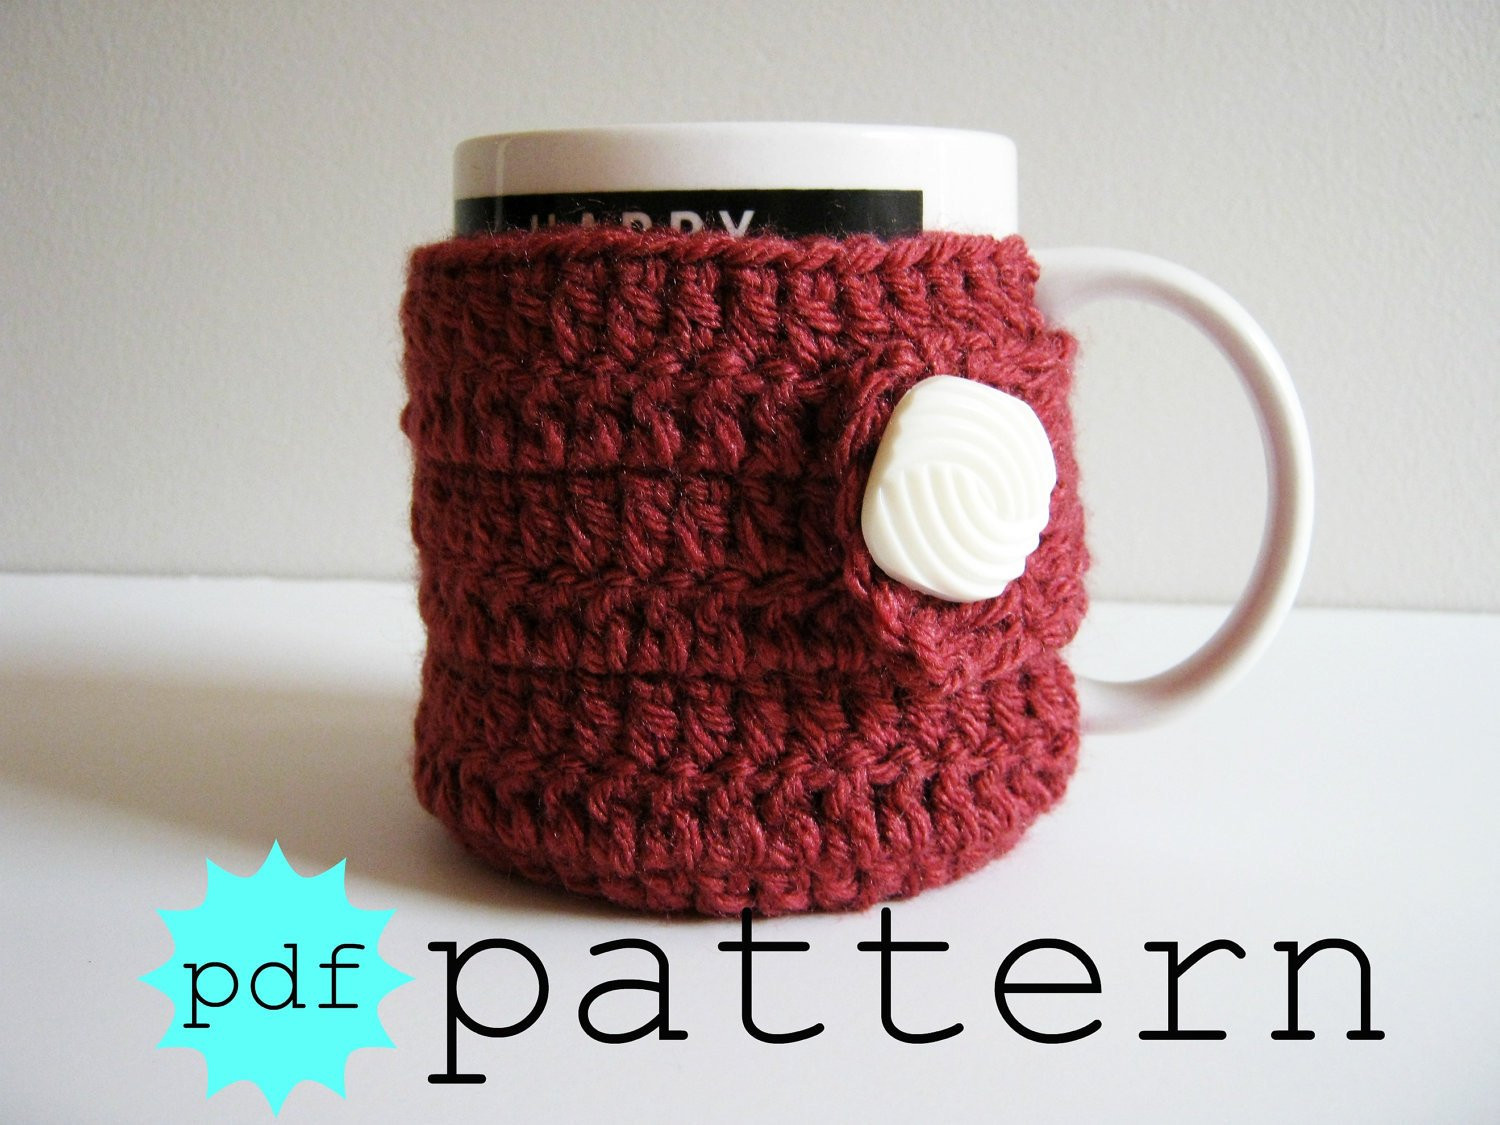 Crochet Coffee Cup Cozy Luxury Pdf Crochet Pattern Coffee Mug Cozy with button by Of Crochet Coffee Cup Cozy Best Of Craftdrawer Crafts Free Easy to Crochet Mug Cozy Patterns